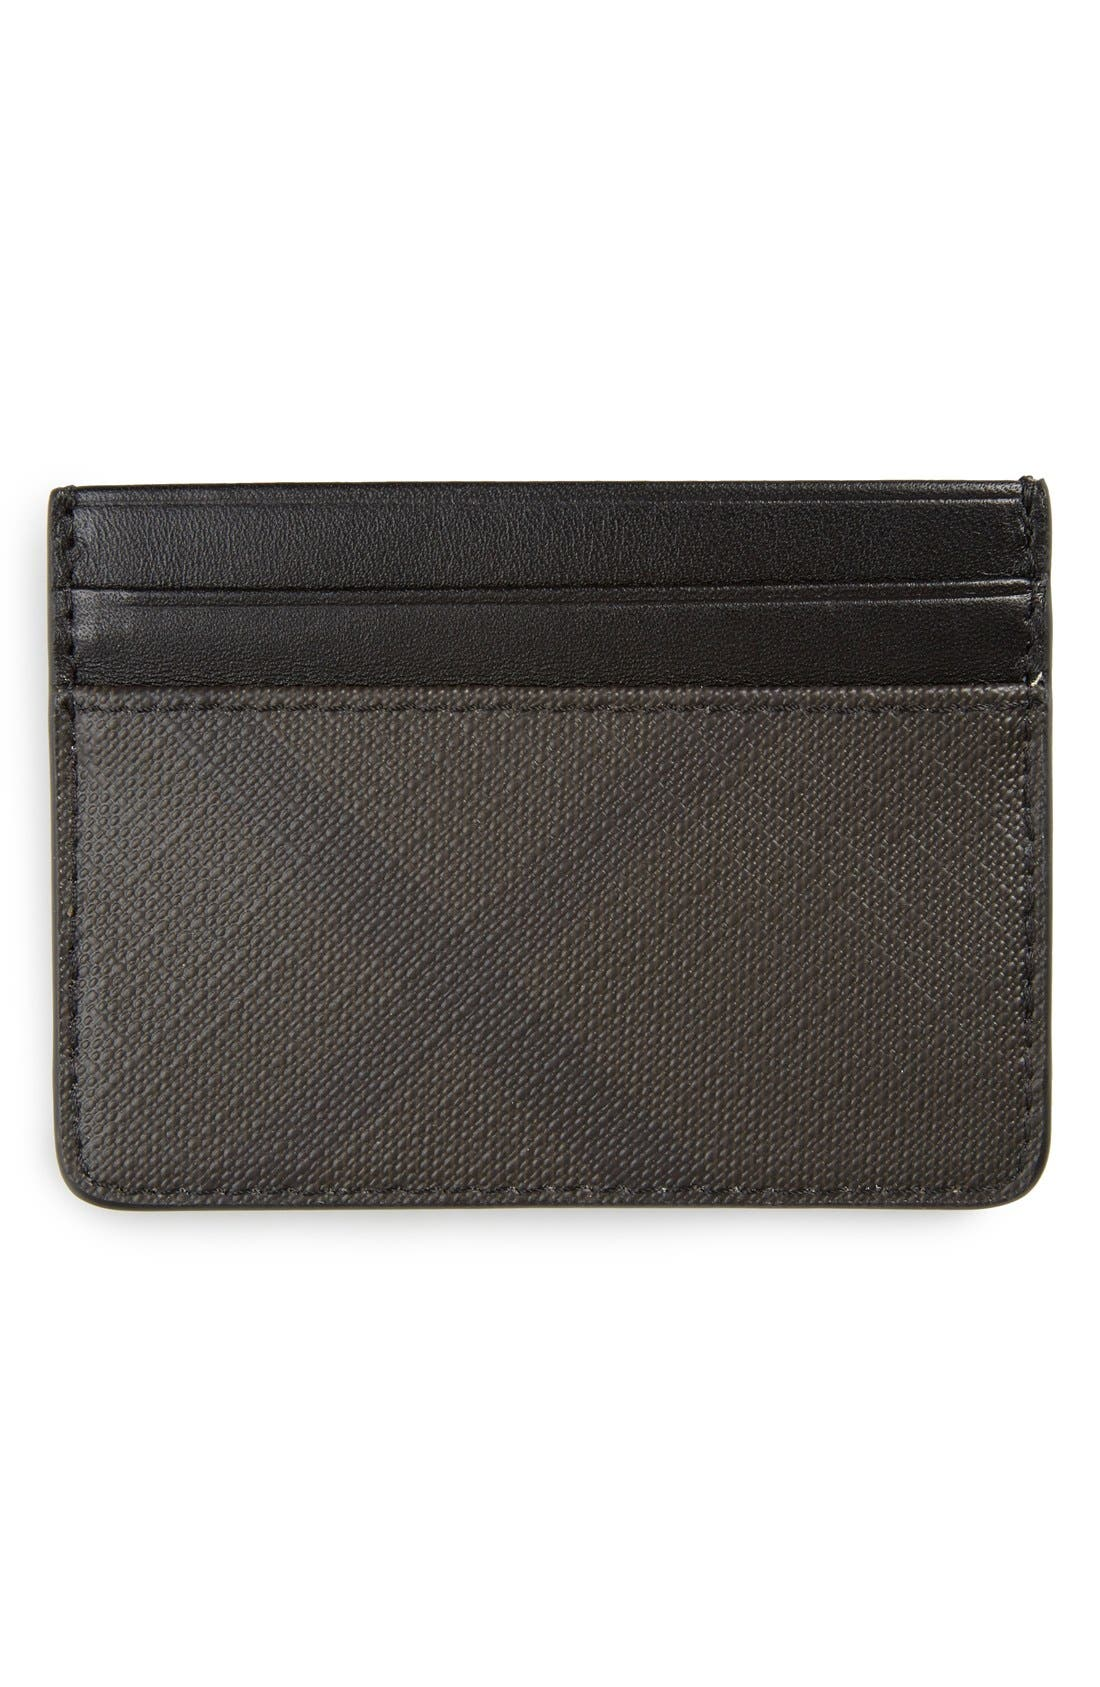 BURBERRY,                             'New London' Check Card Case,                             Alternate thumbnail 2, color,                             207